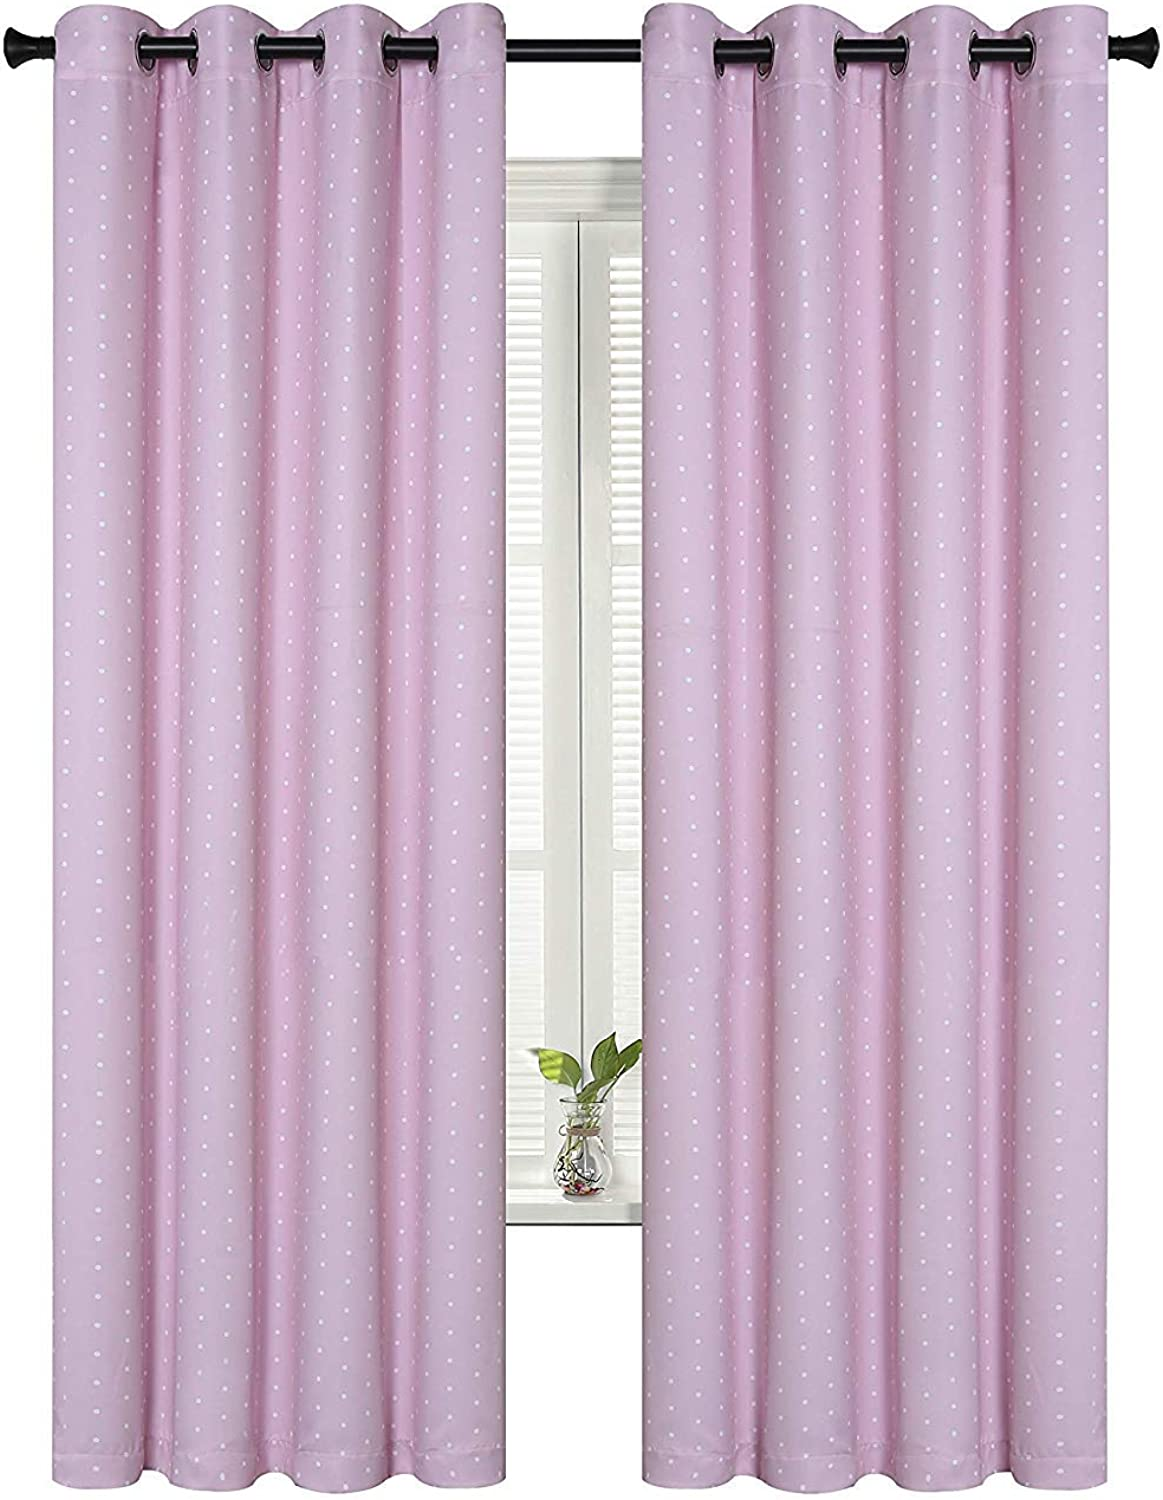 SUO AI TEXTILE Circle Print Curtains Room Darkening Rod Pocket Curtain Panels for Girls Room 52x95 Inch Pink and White Set of 2